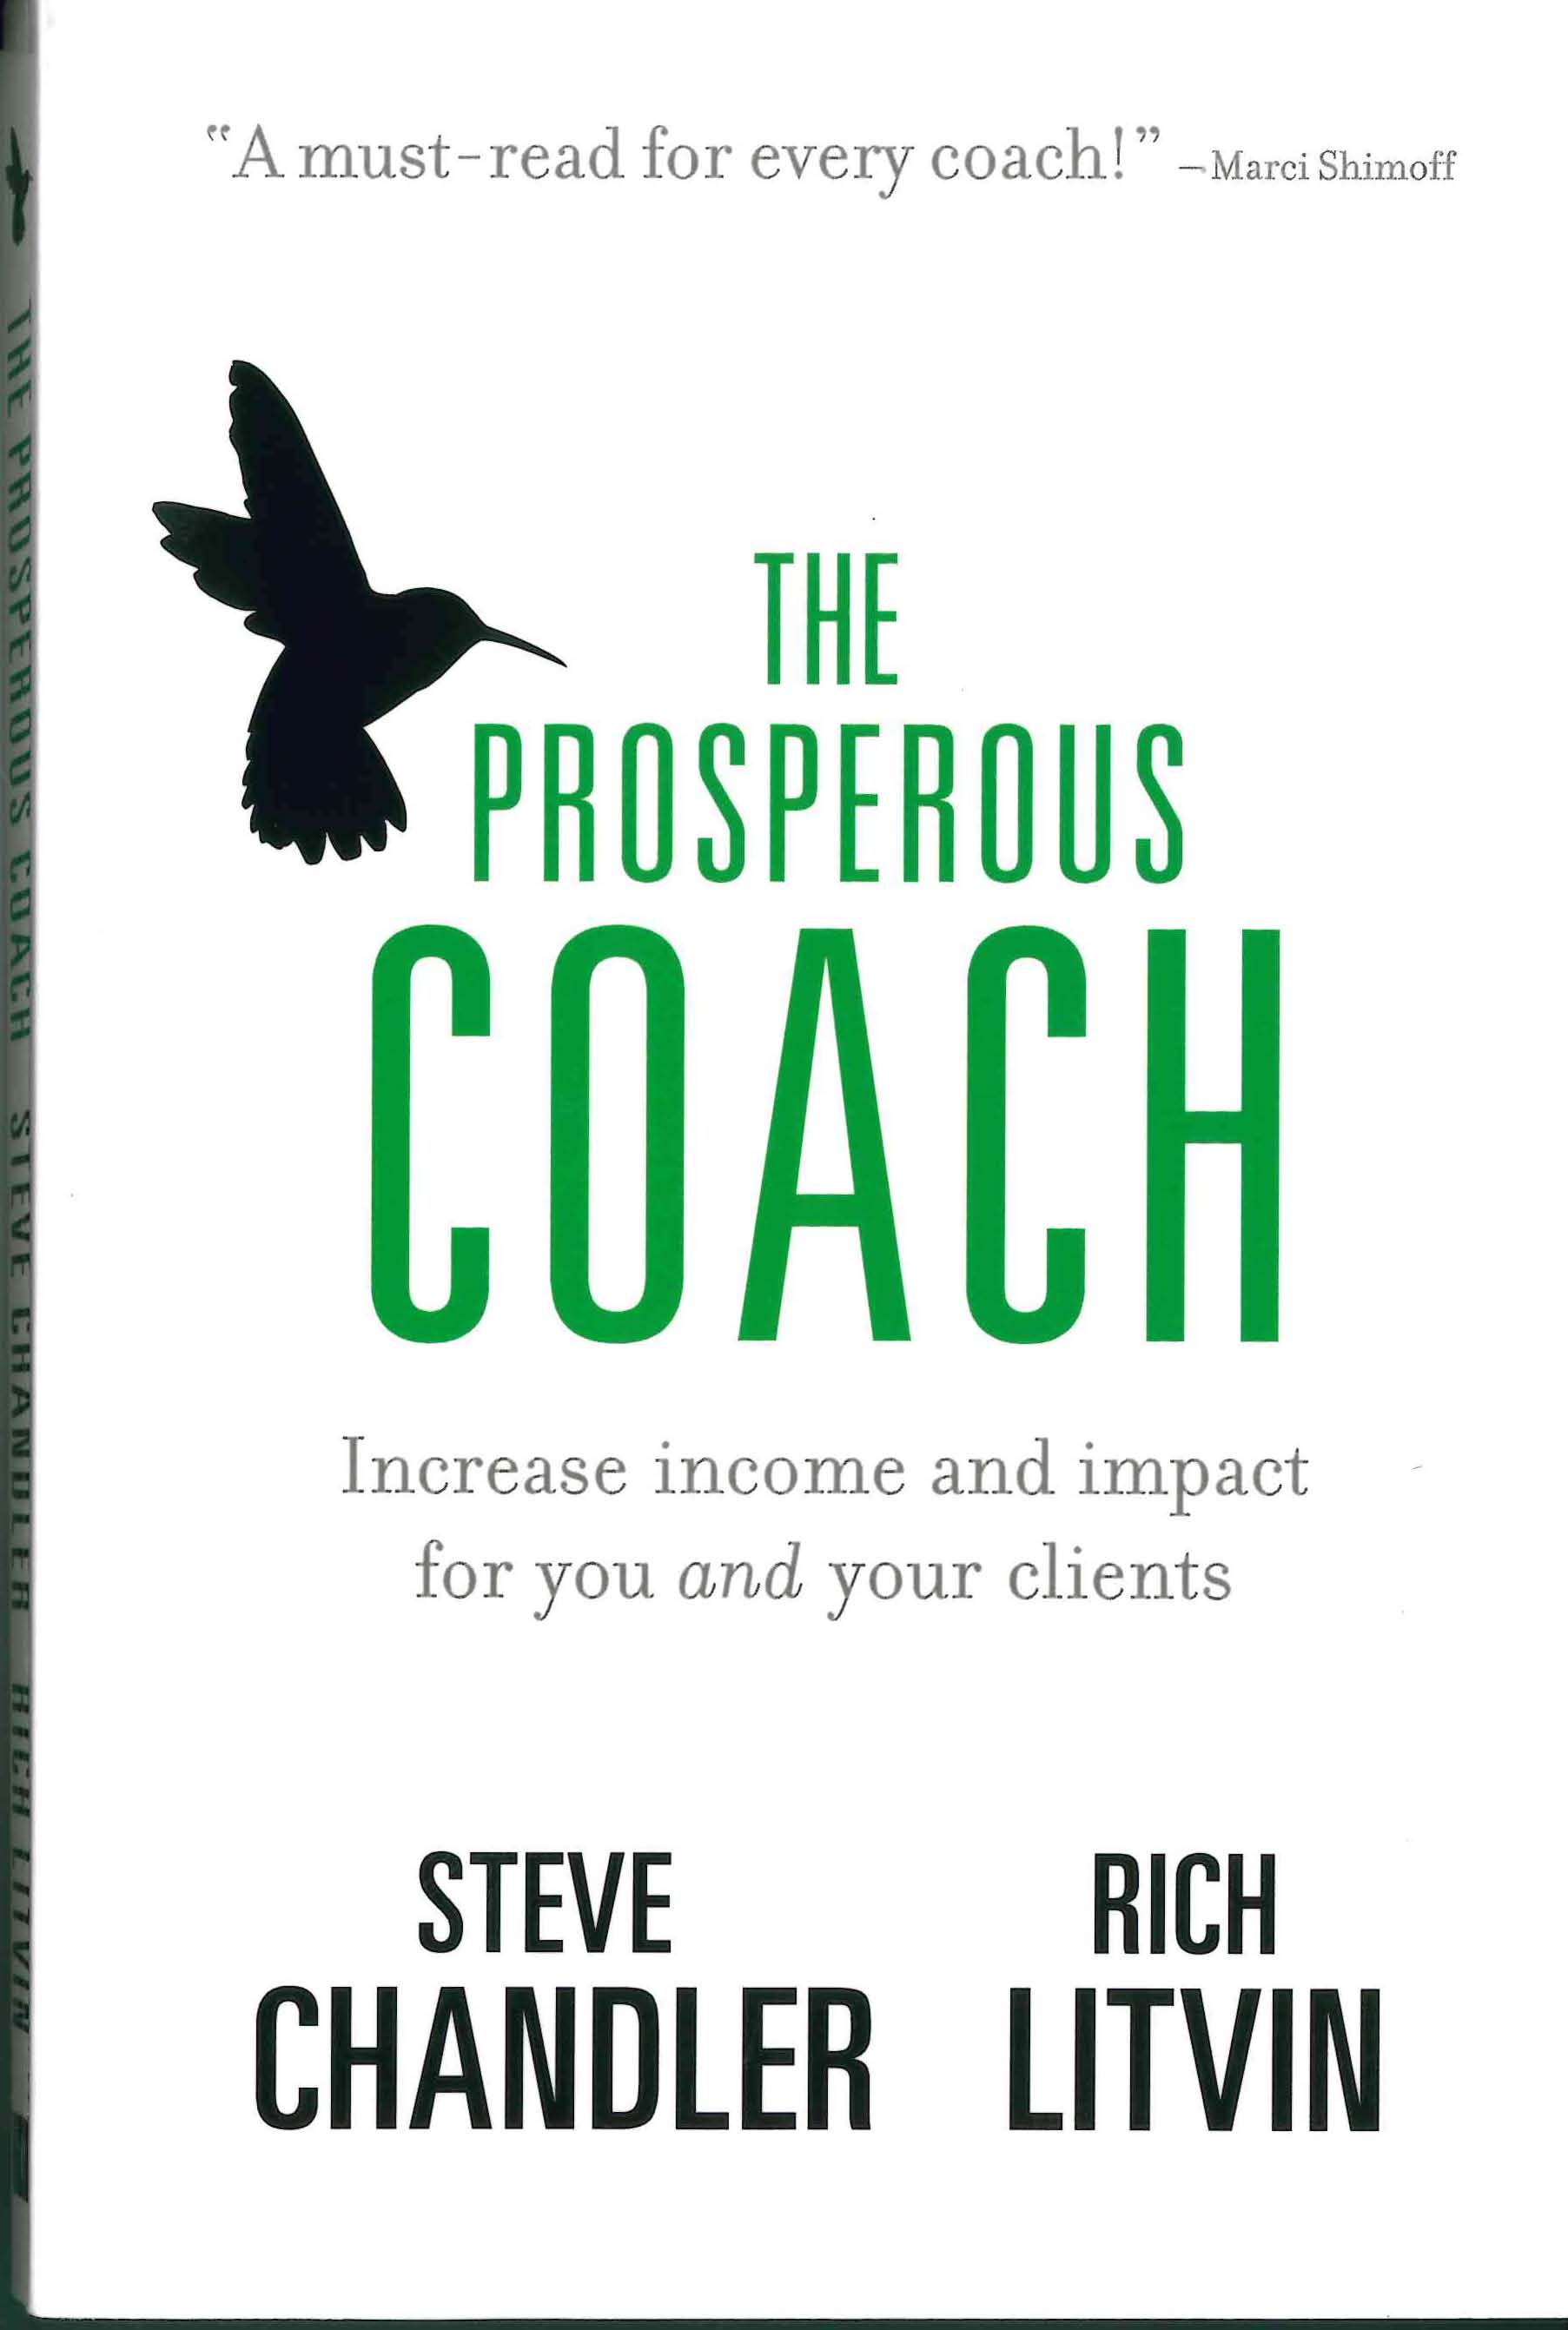 The Prosperous Coach by Steve Chandler & Rich Litvin